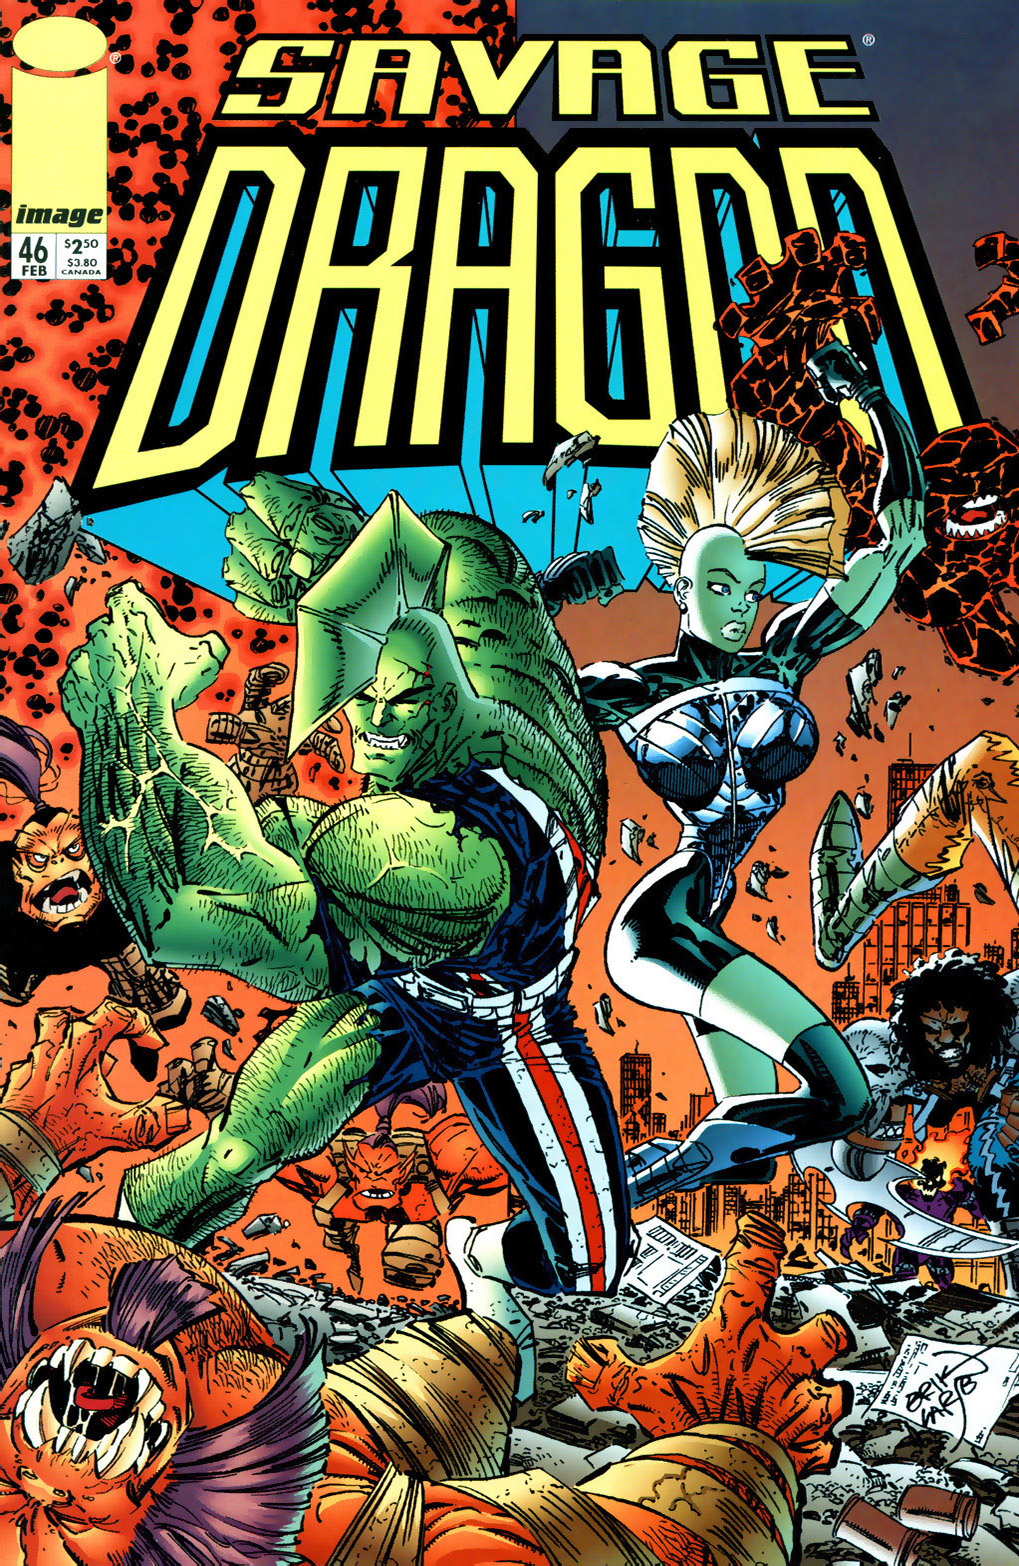 Cover Savage Dragon Vol.2 #46